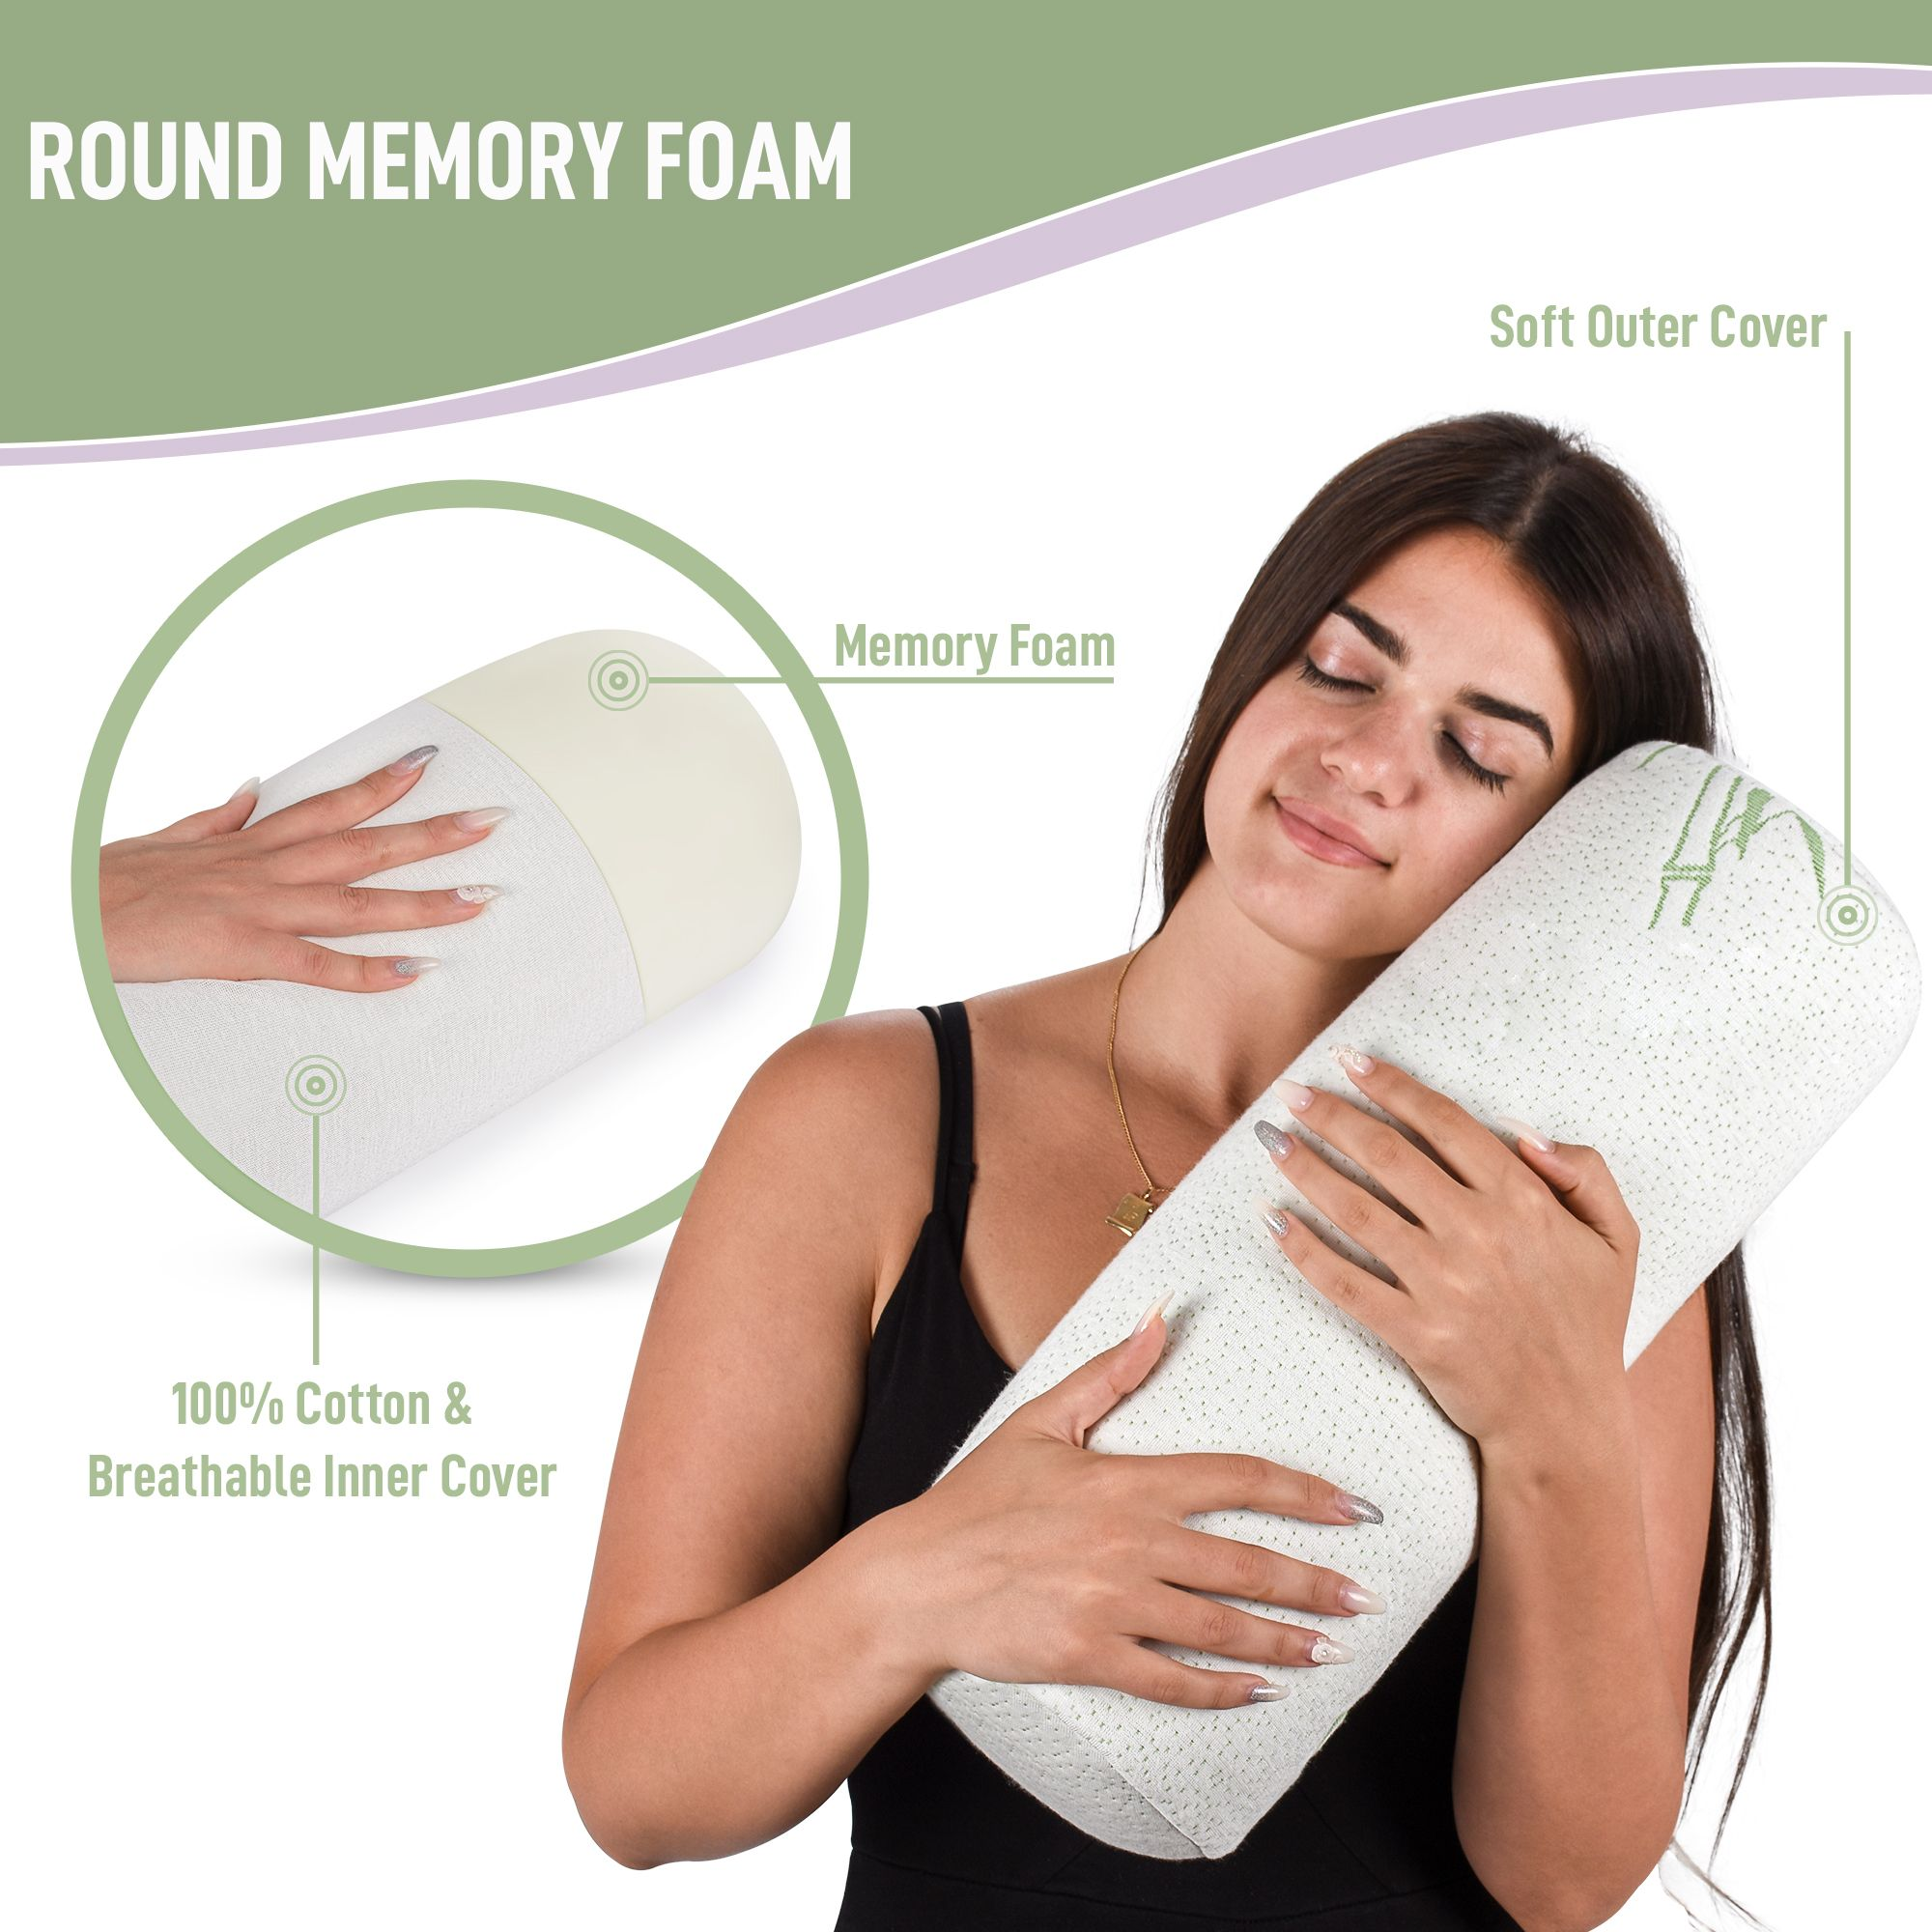 Cervical Neck Roll Bolster Support Pillow For Sleeping Memory Foam And Bamboo Cover Memory Foam Support Pillows Neck Roll Pillow